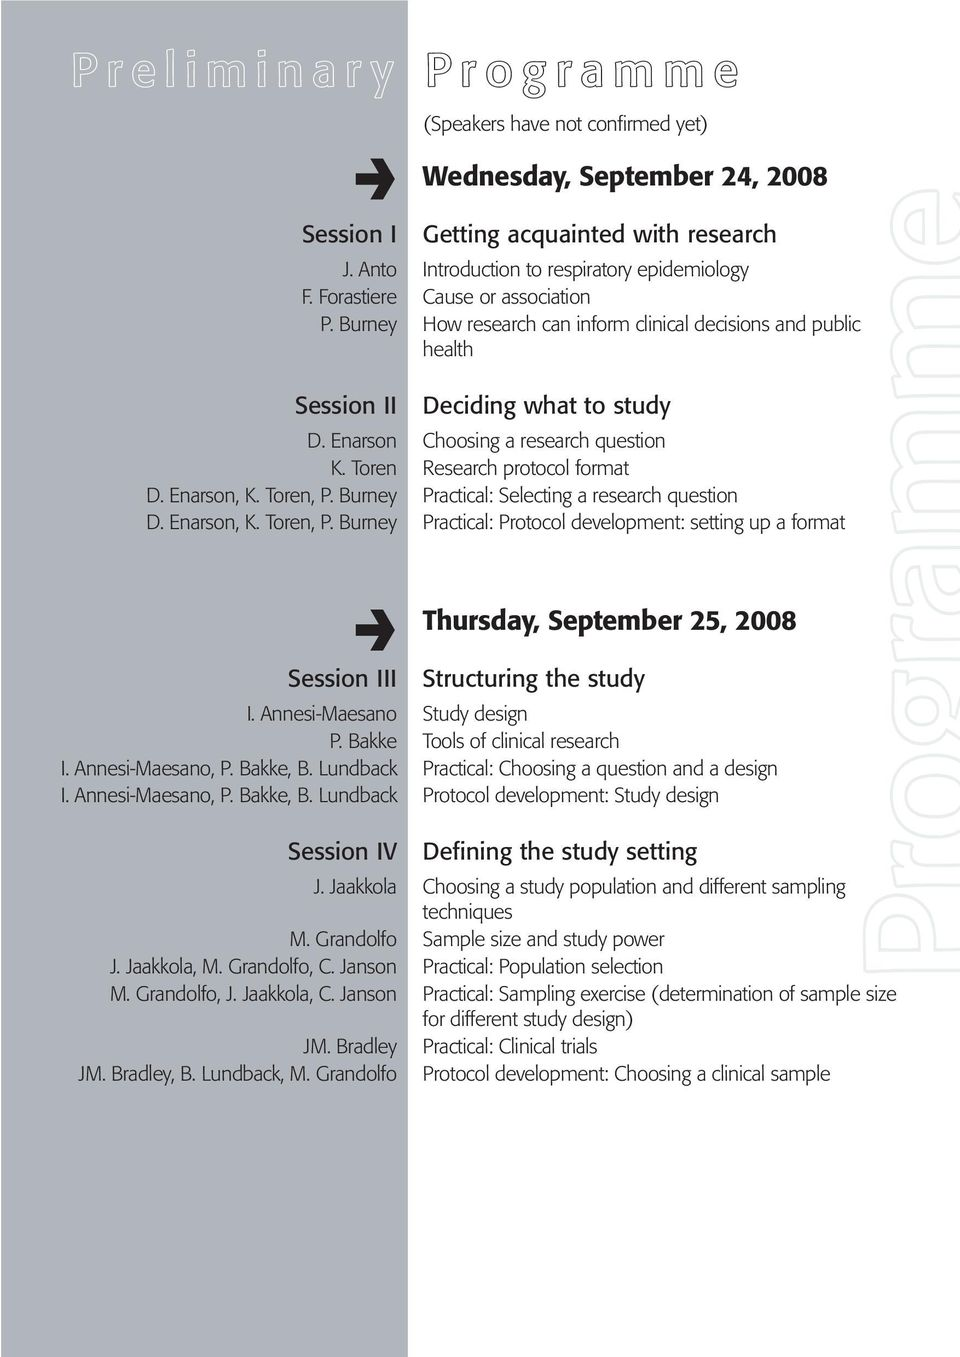 Toren Research protocol format D. Enarson, K. Toren, P. Burney Practical: Selecting a research question D. Enarson, K. Toren, P. Burney Practical: Protocol development: setting up a format Thursday, September 25, 2008 Session III Structuring the study I.